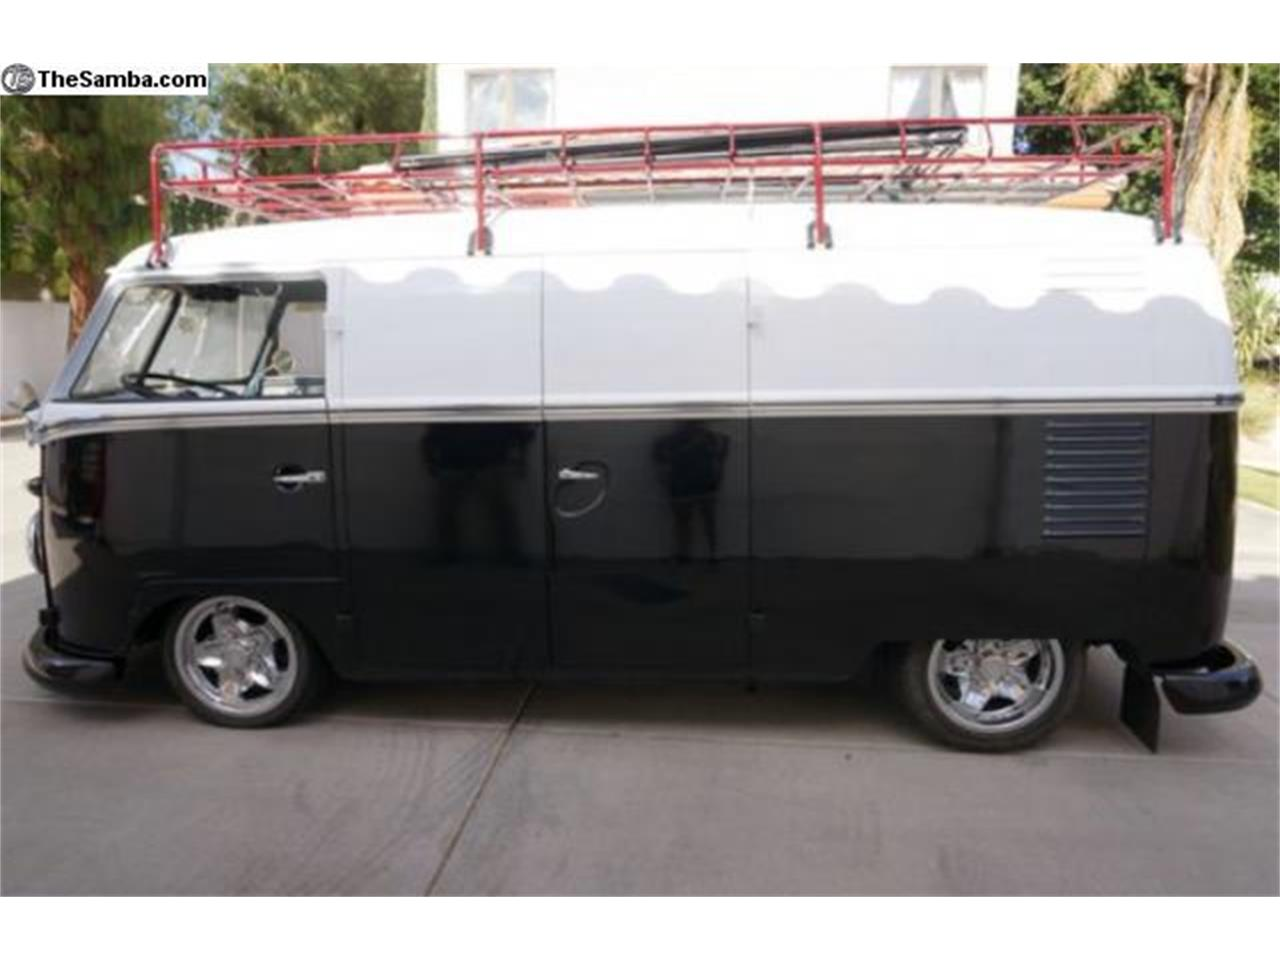 1961 Volkswagen Van for sale in Tempe, AZ